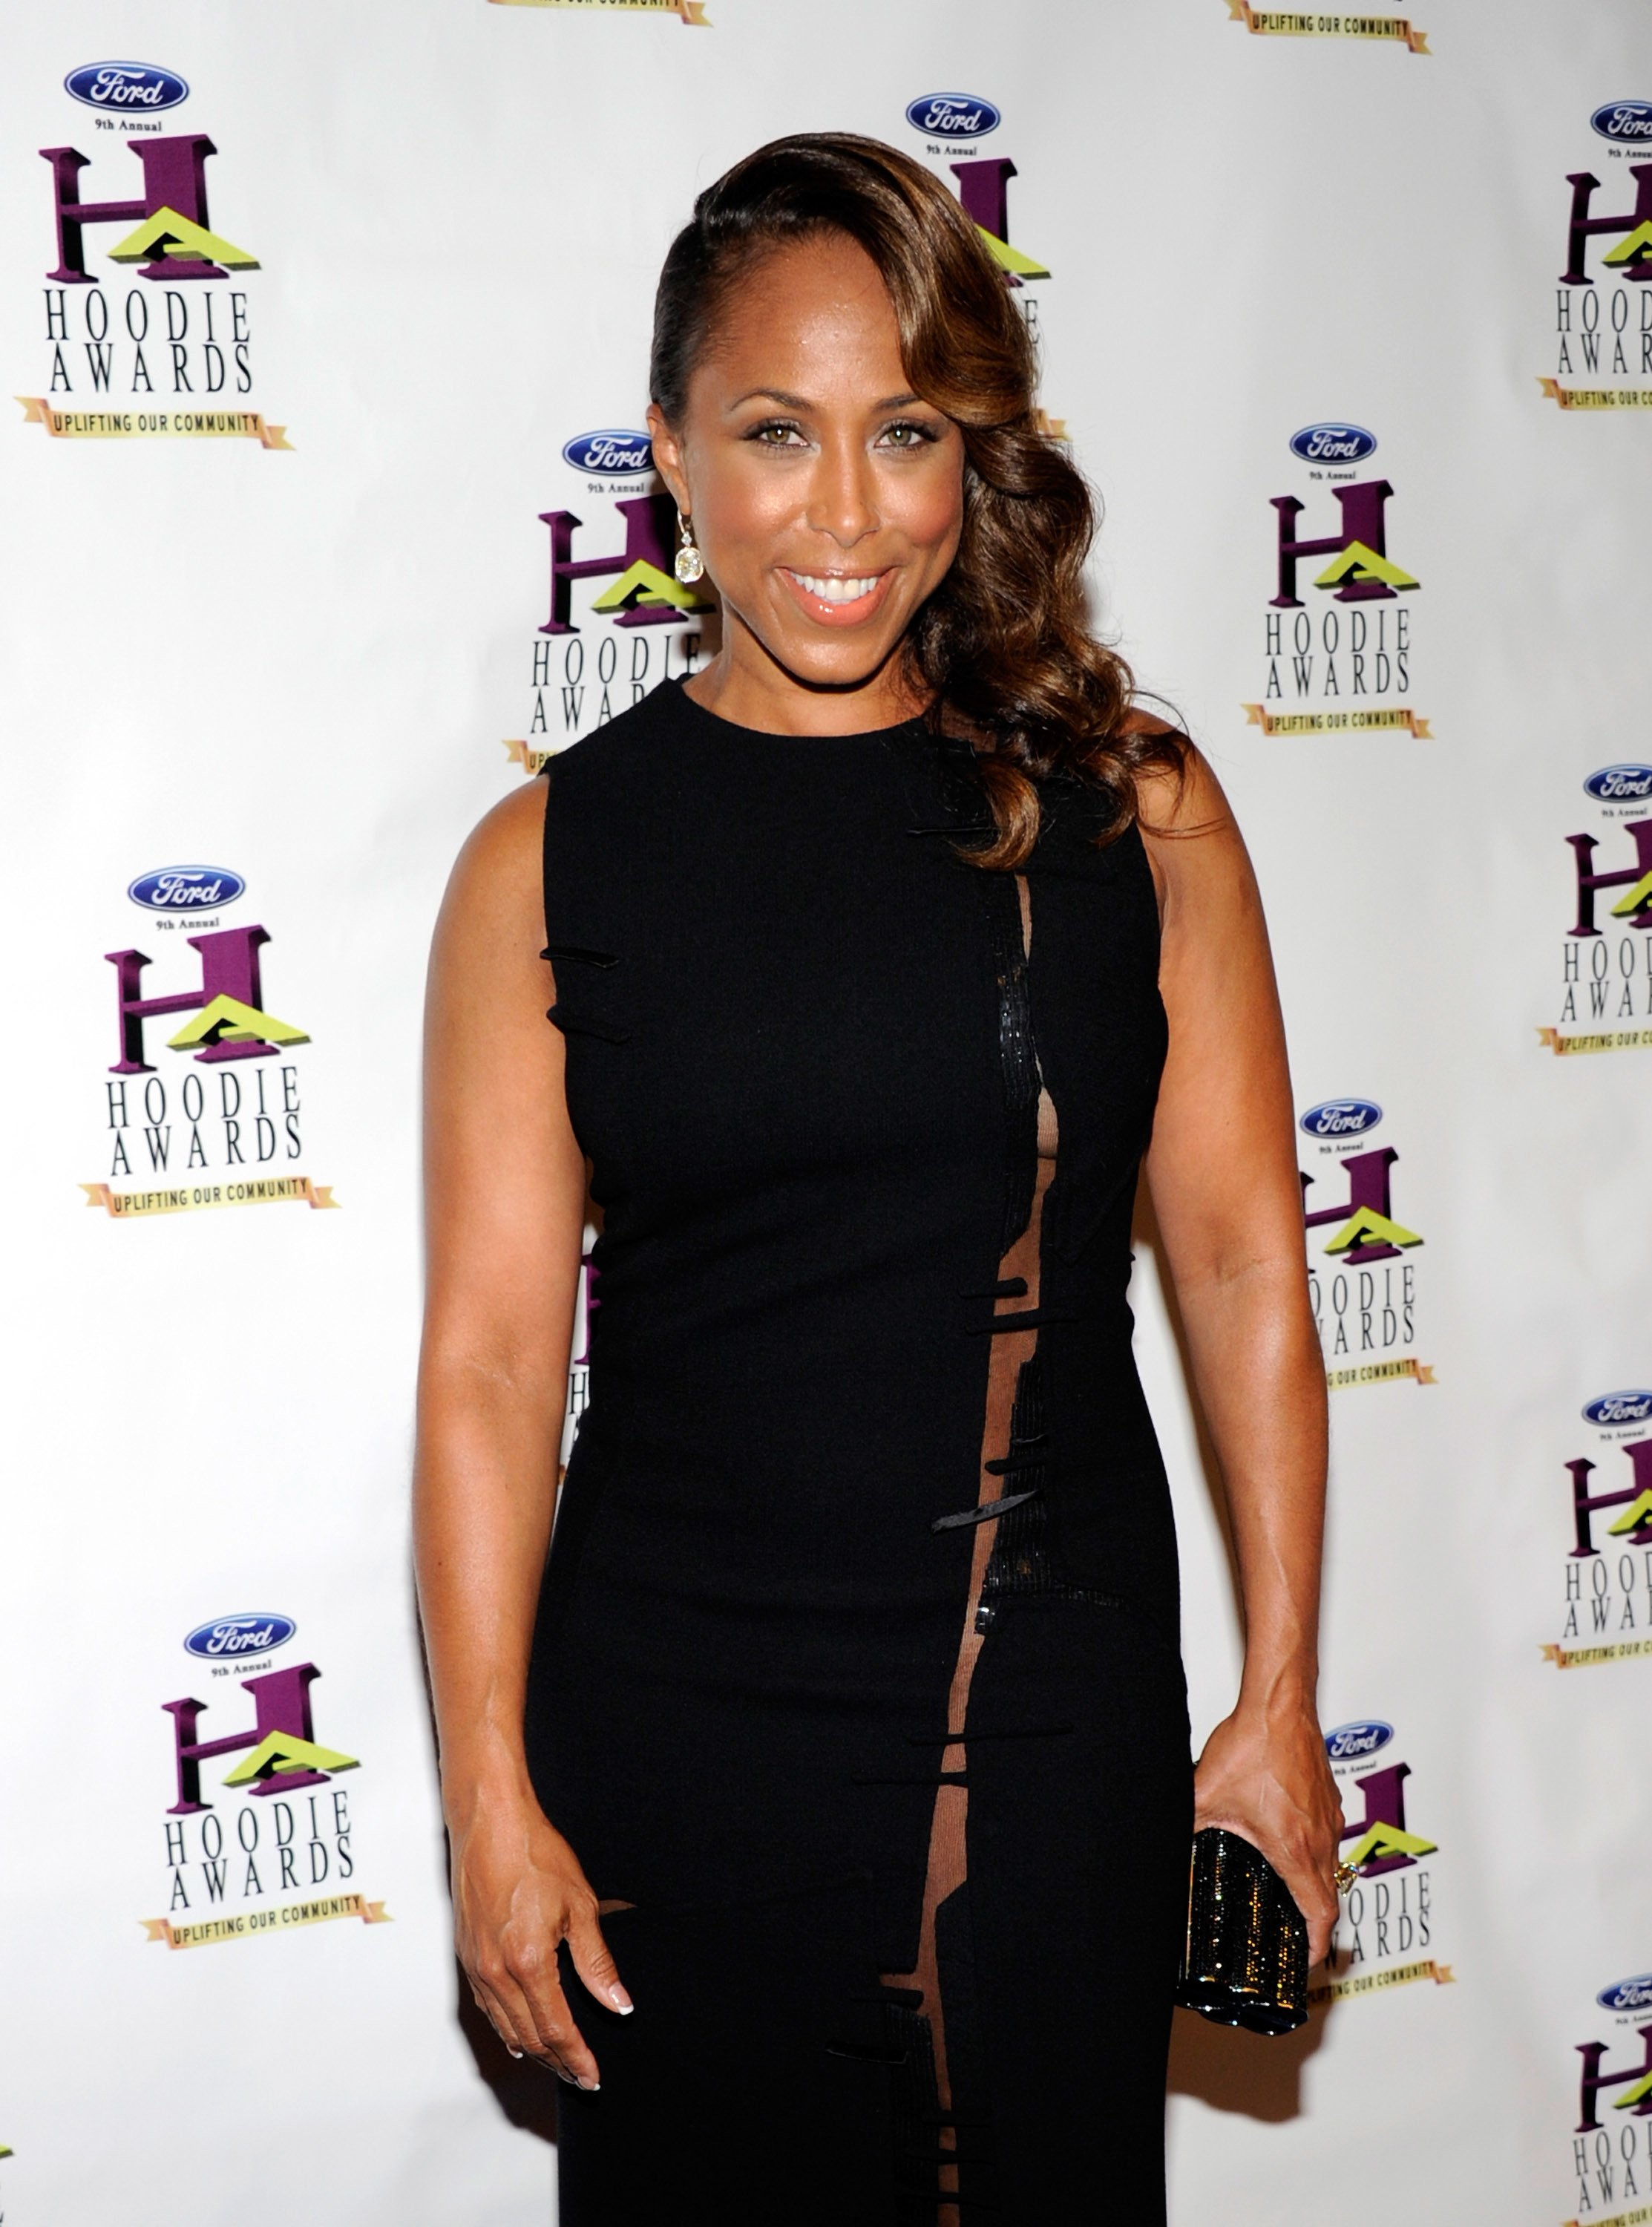 Marjorie Harvey arrives at the ninth annual Ford Hoodie Awards at the Mandalay Bay Events Center on August 13, 2011. | Source: Getty Images